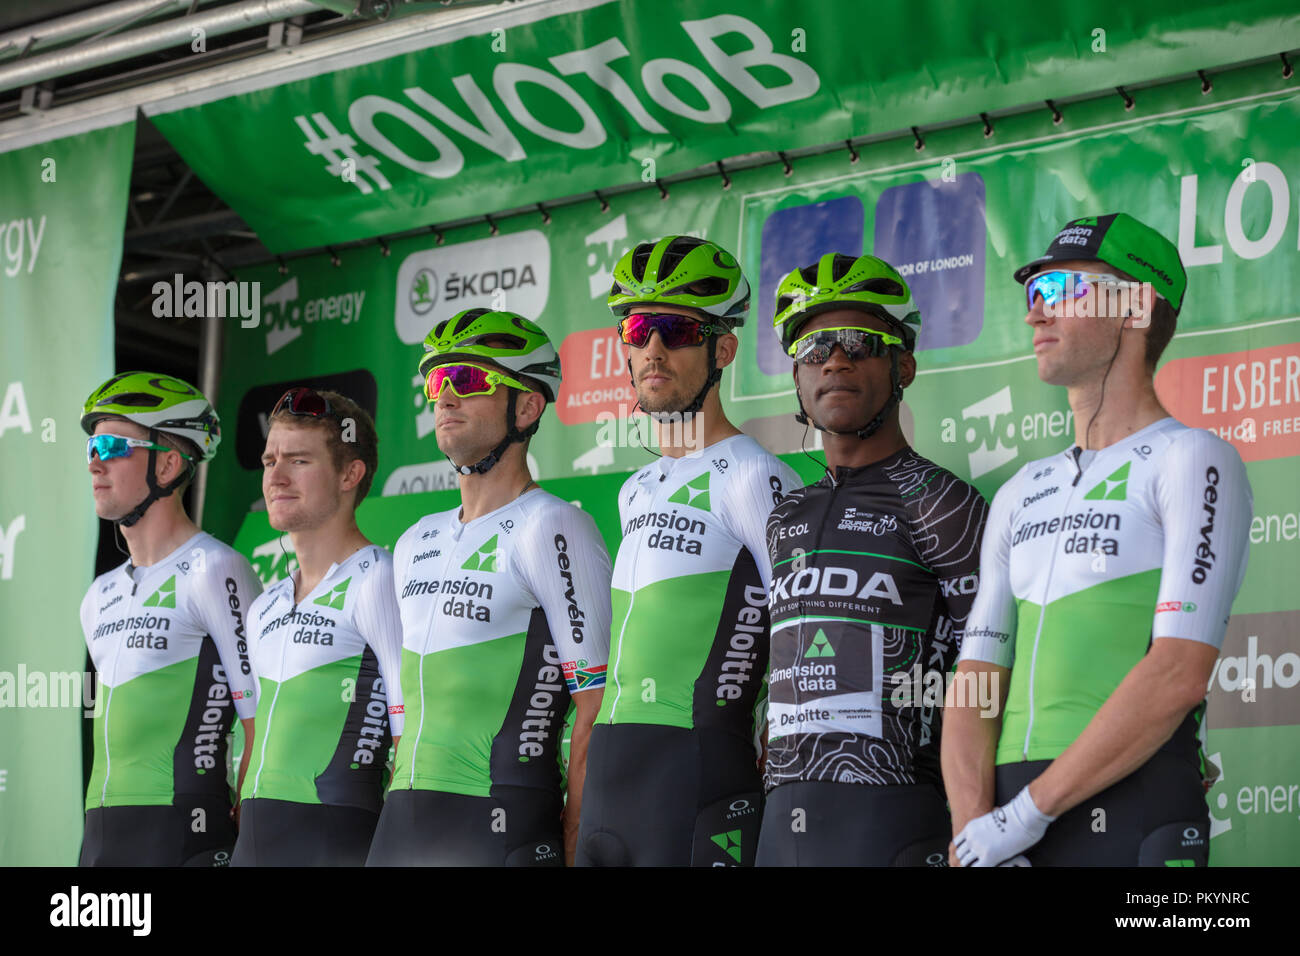 Dimension Data Stock Photos   Dimension Data Stock Images - Alamy 7d6ff8be3